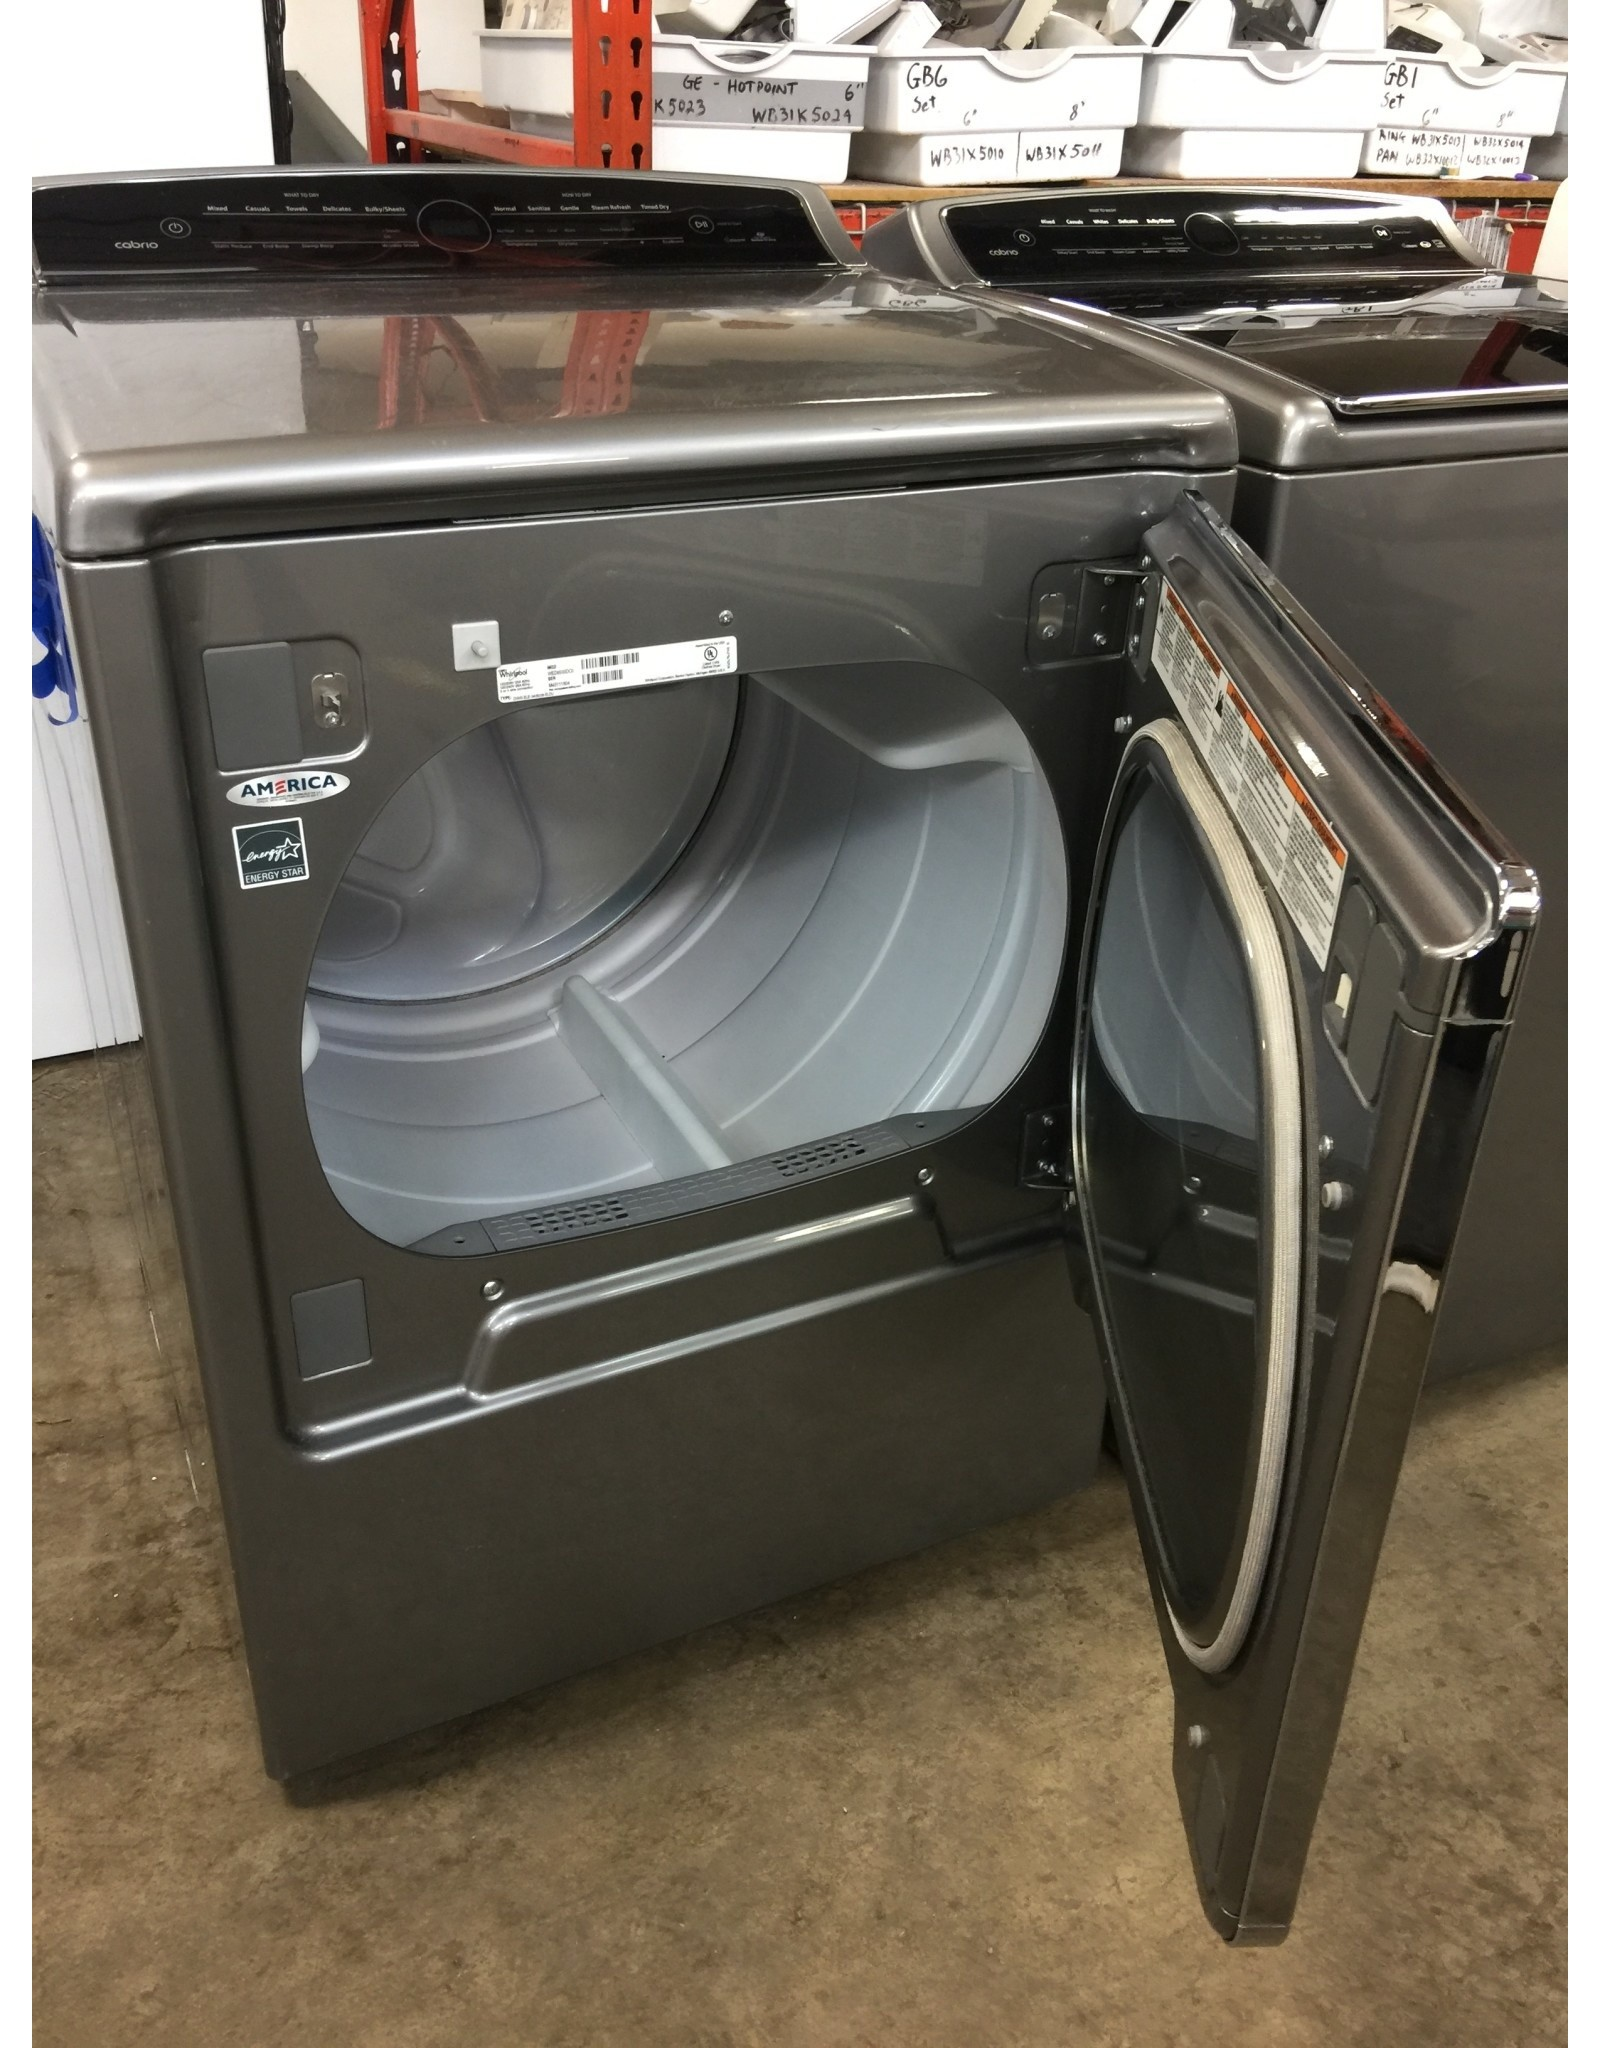 WHIRLPOOL WHIRLPOOL CABRIO TOP LOAD SILVER STEAM DRYER